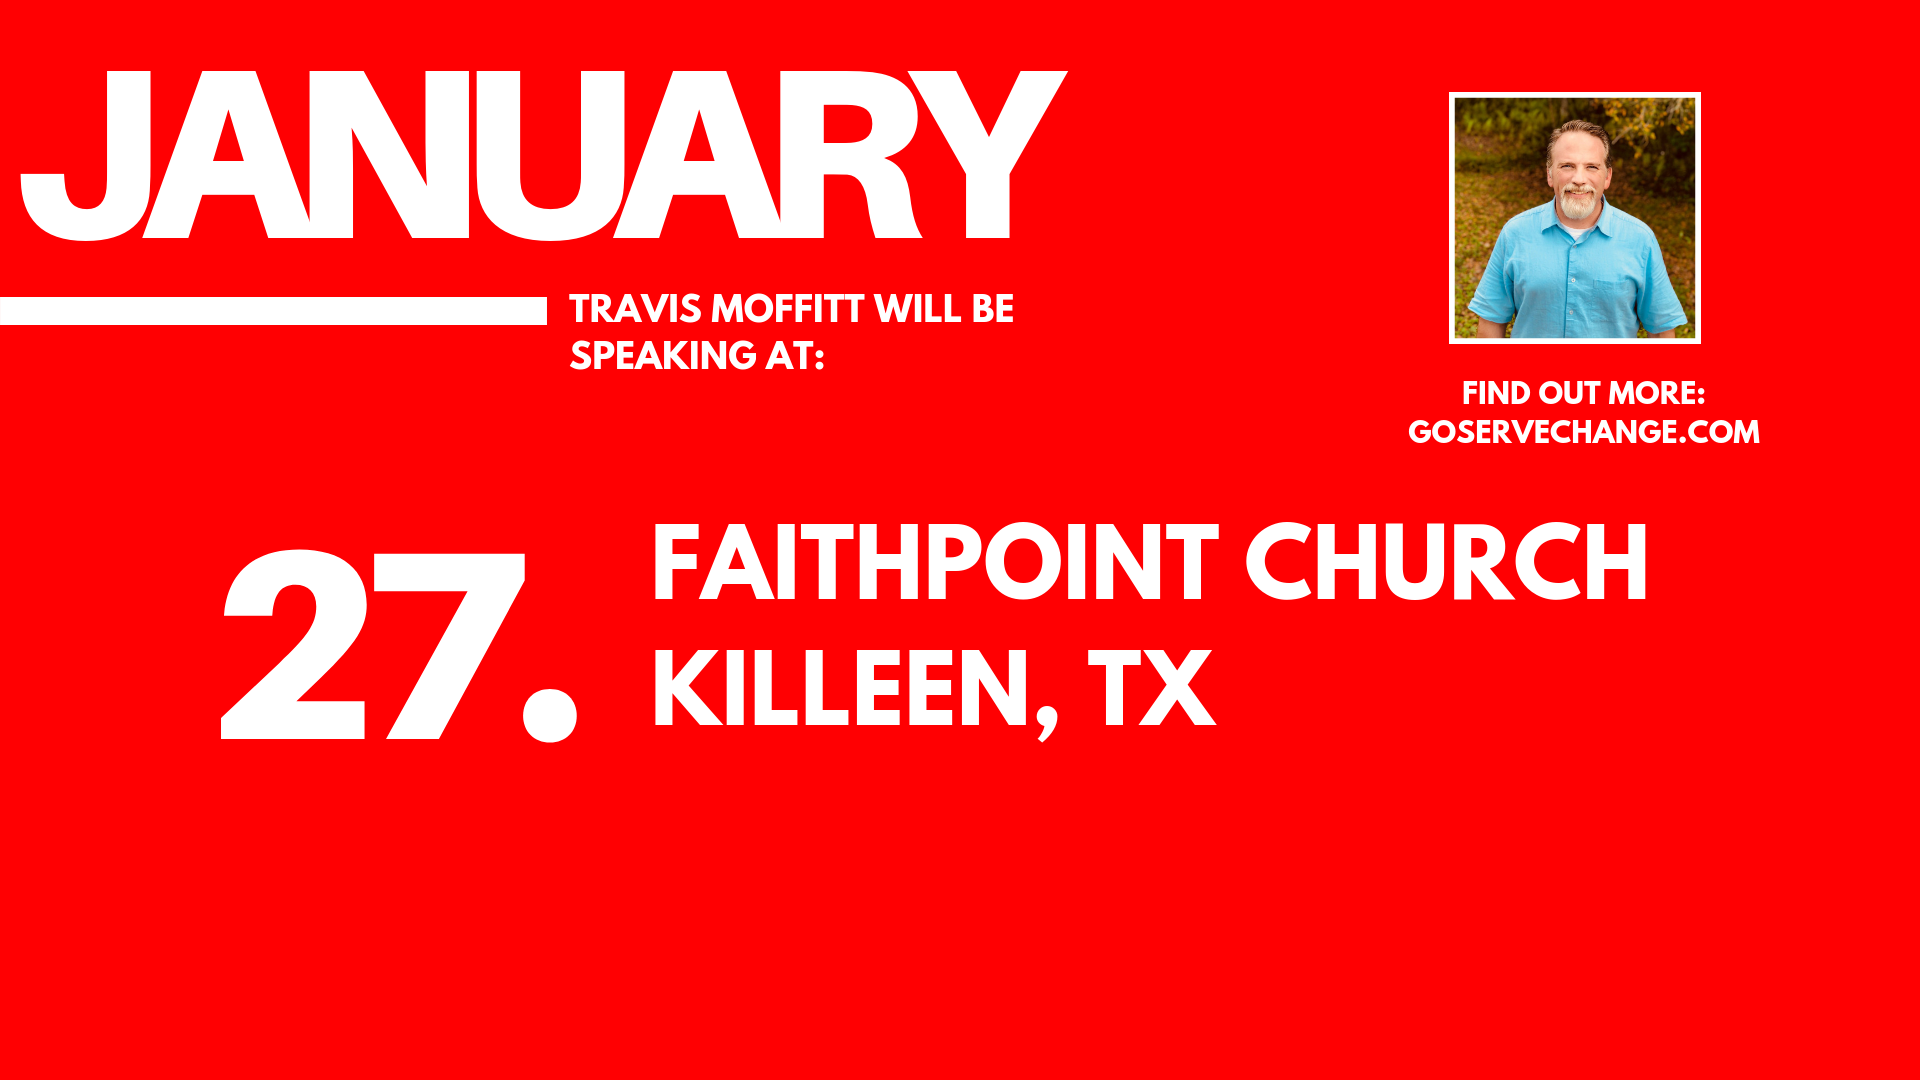 Travis Moffitt will be speaking at Faithpoint Church in Killeen Texas.png